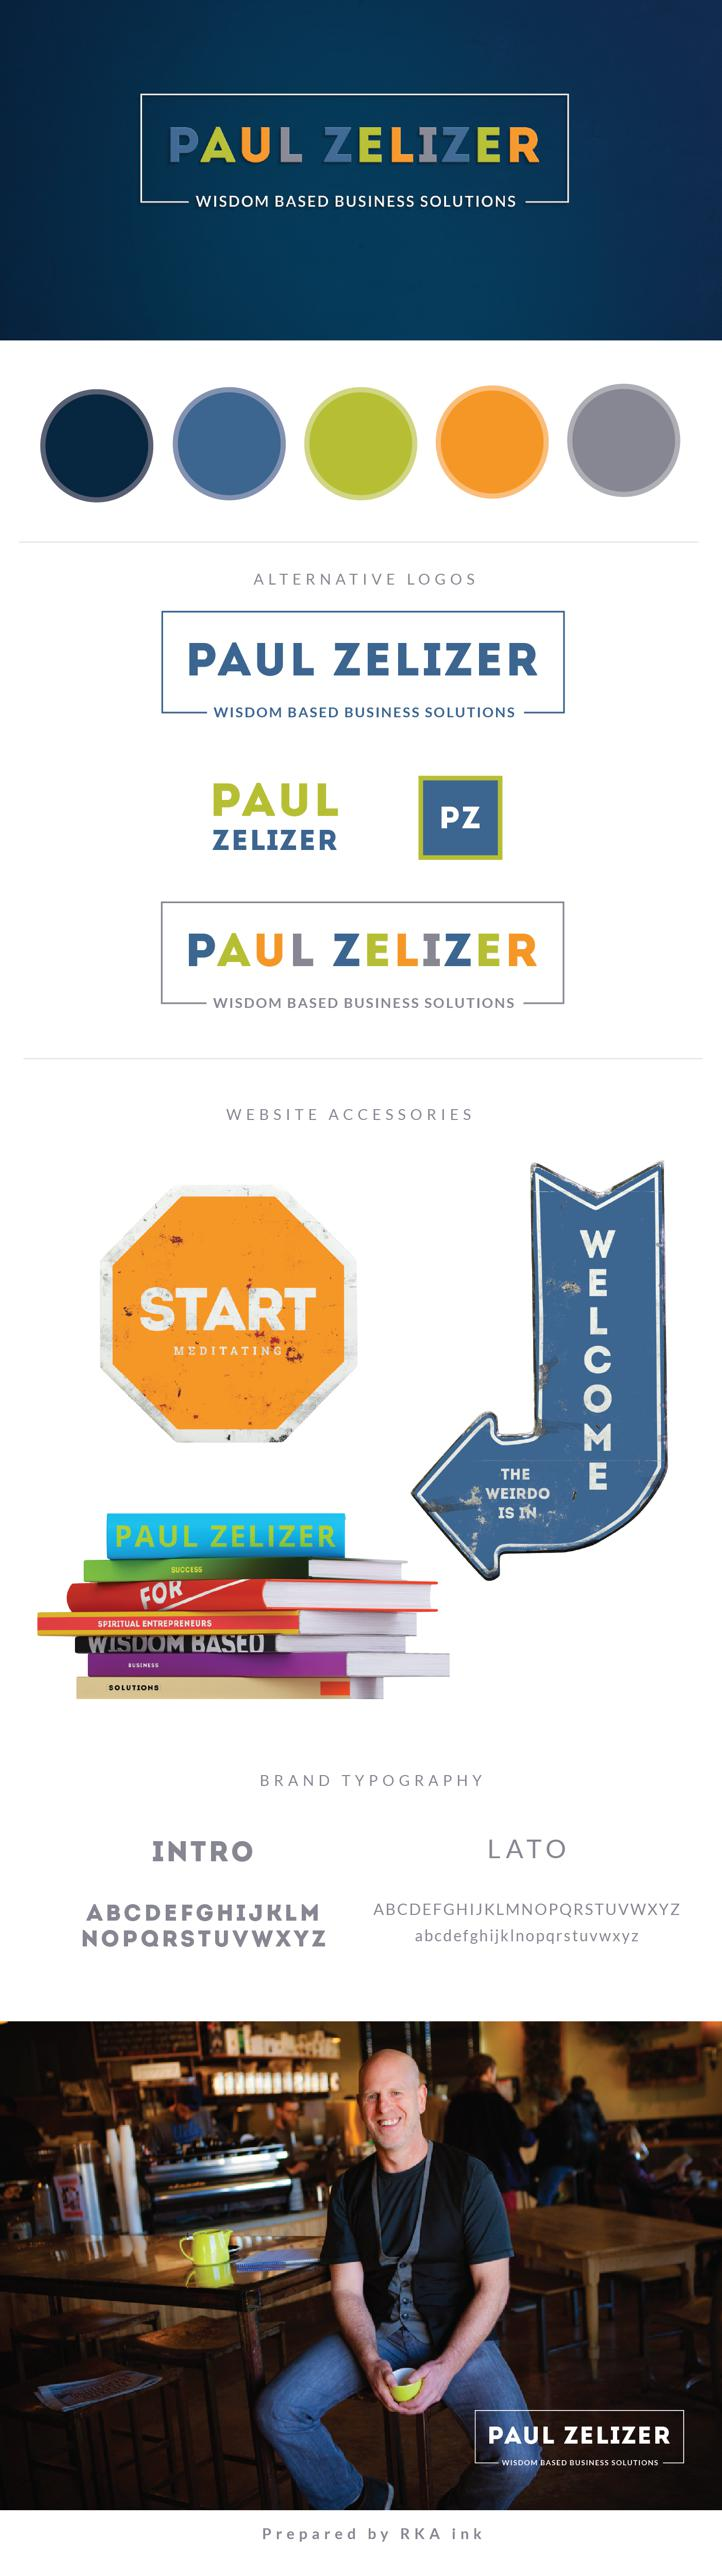 Paul Zelizer Identity Design RKA ink